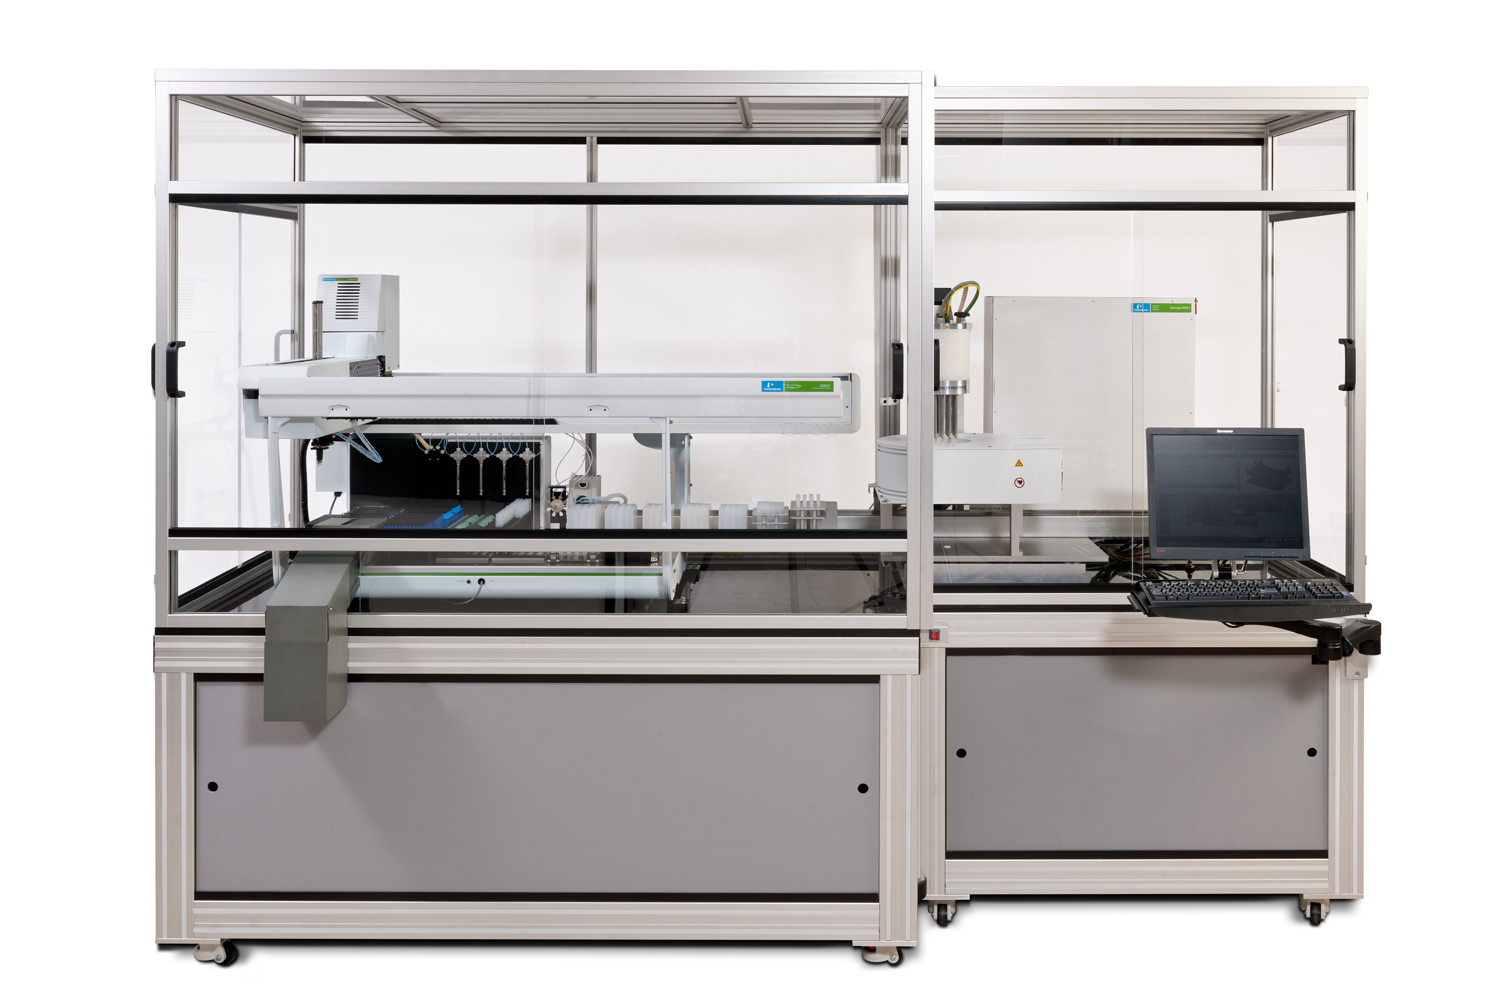 PerkinElmer introduces the JANUS(R) chemagic automated nucleic acid workstation that offers high throughput DNA and RNA extraction with four times the yield and twice the throughput of alternate technologies. A fully integrated system, this workstation combines best-in-class magnetic bead nucleic acid isolation technology with a fully-supported automated liquid handler to rapidly accelerate the extraction process.